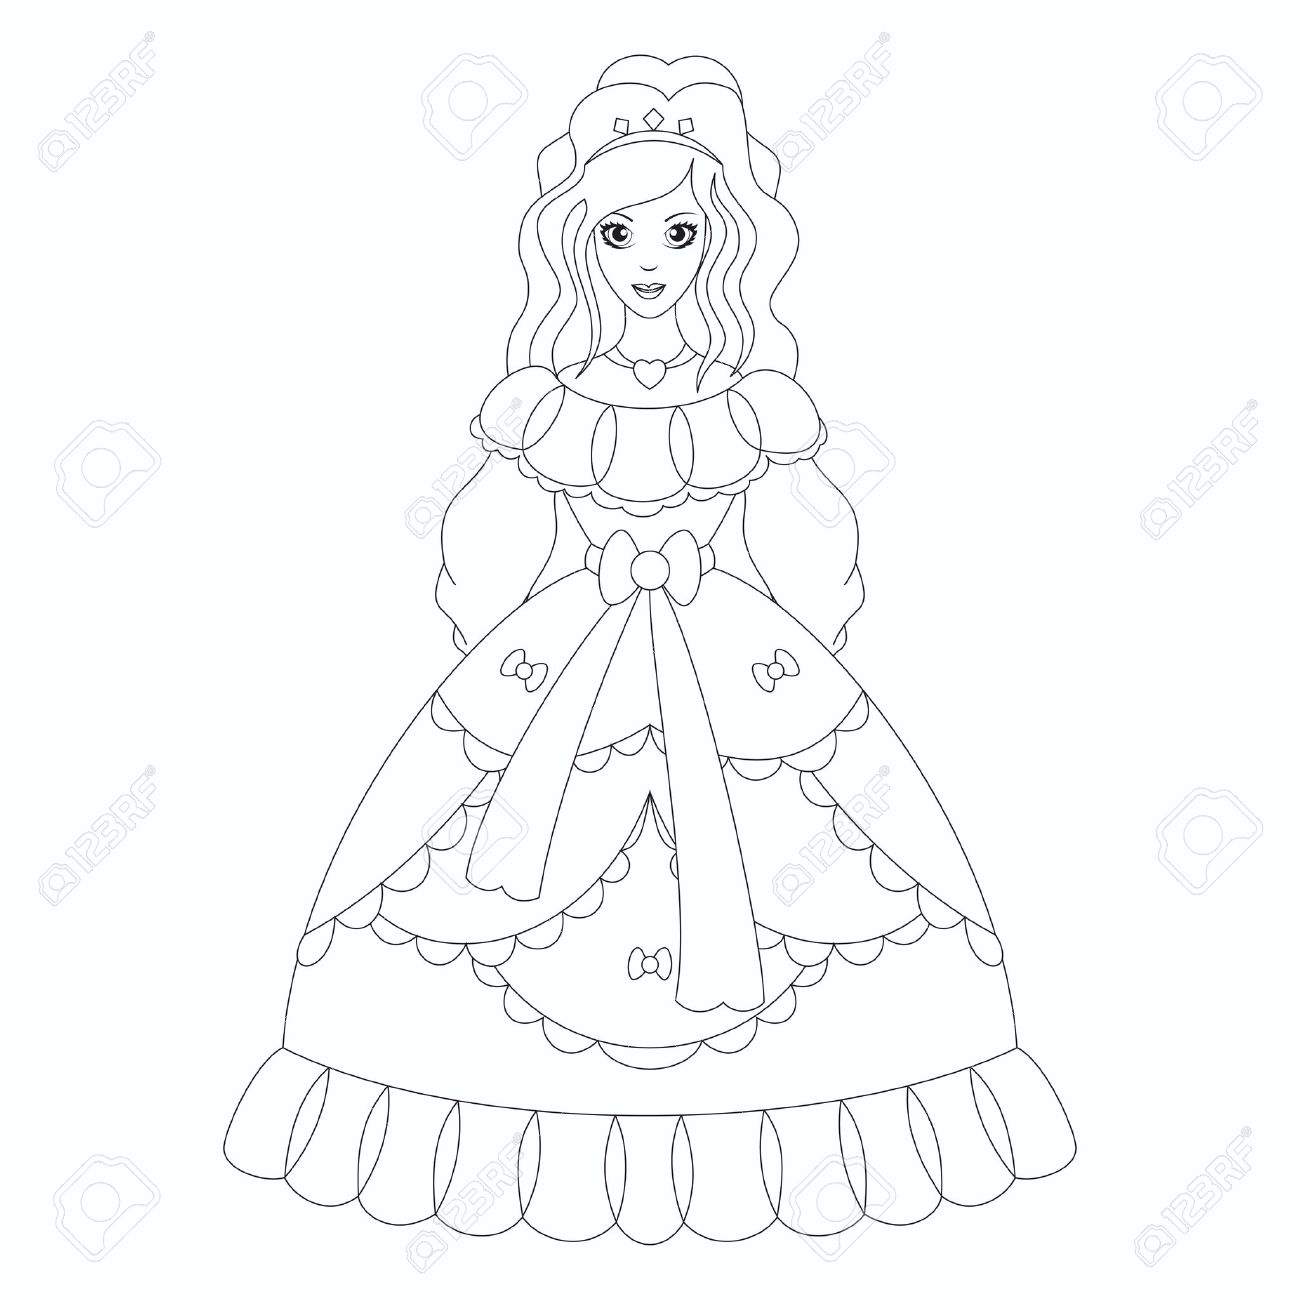 610+ Princess Coloring Book Free